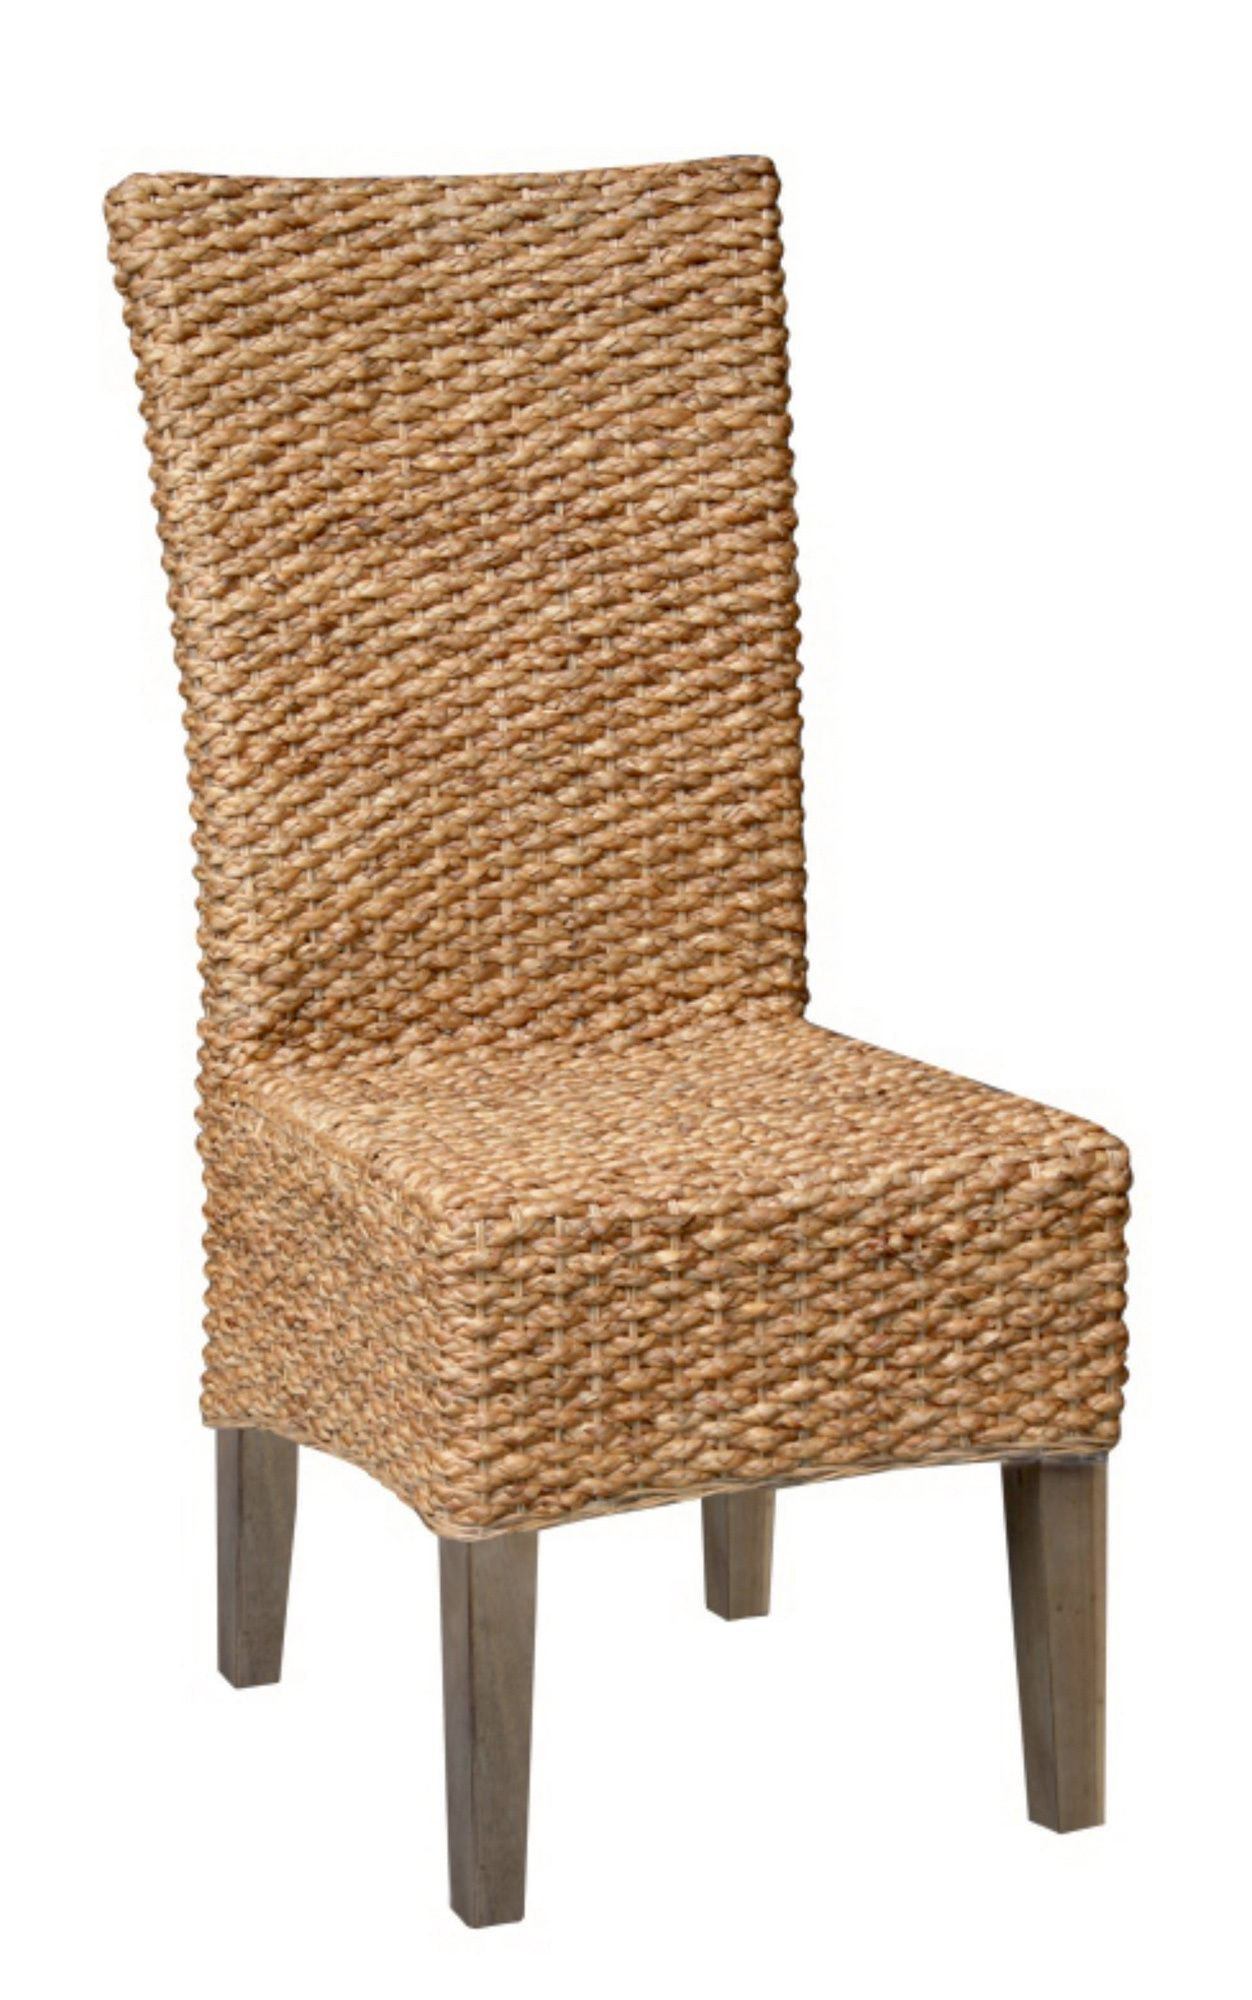 Seagrass Dining Chairs Dining Chairs Hampton Seagrass Chair In Wicker By Cottage Creek